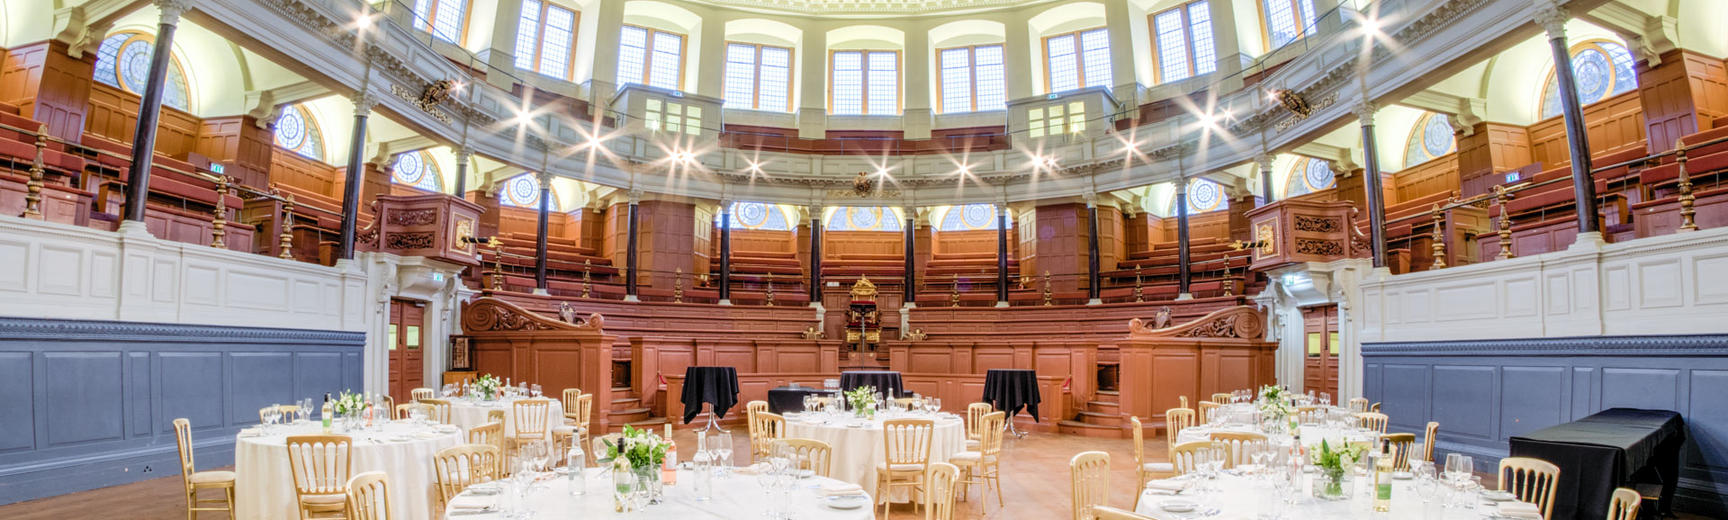 Image of Sheldonian Theatre set up as a wedding venue